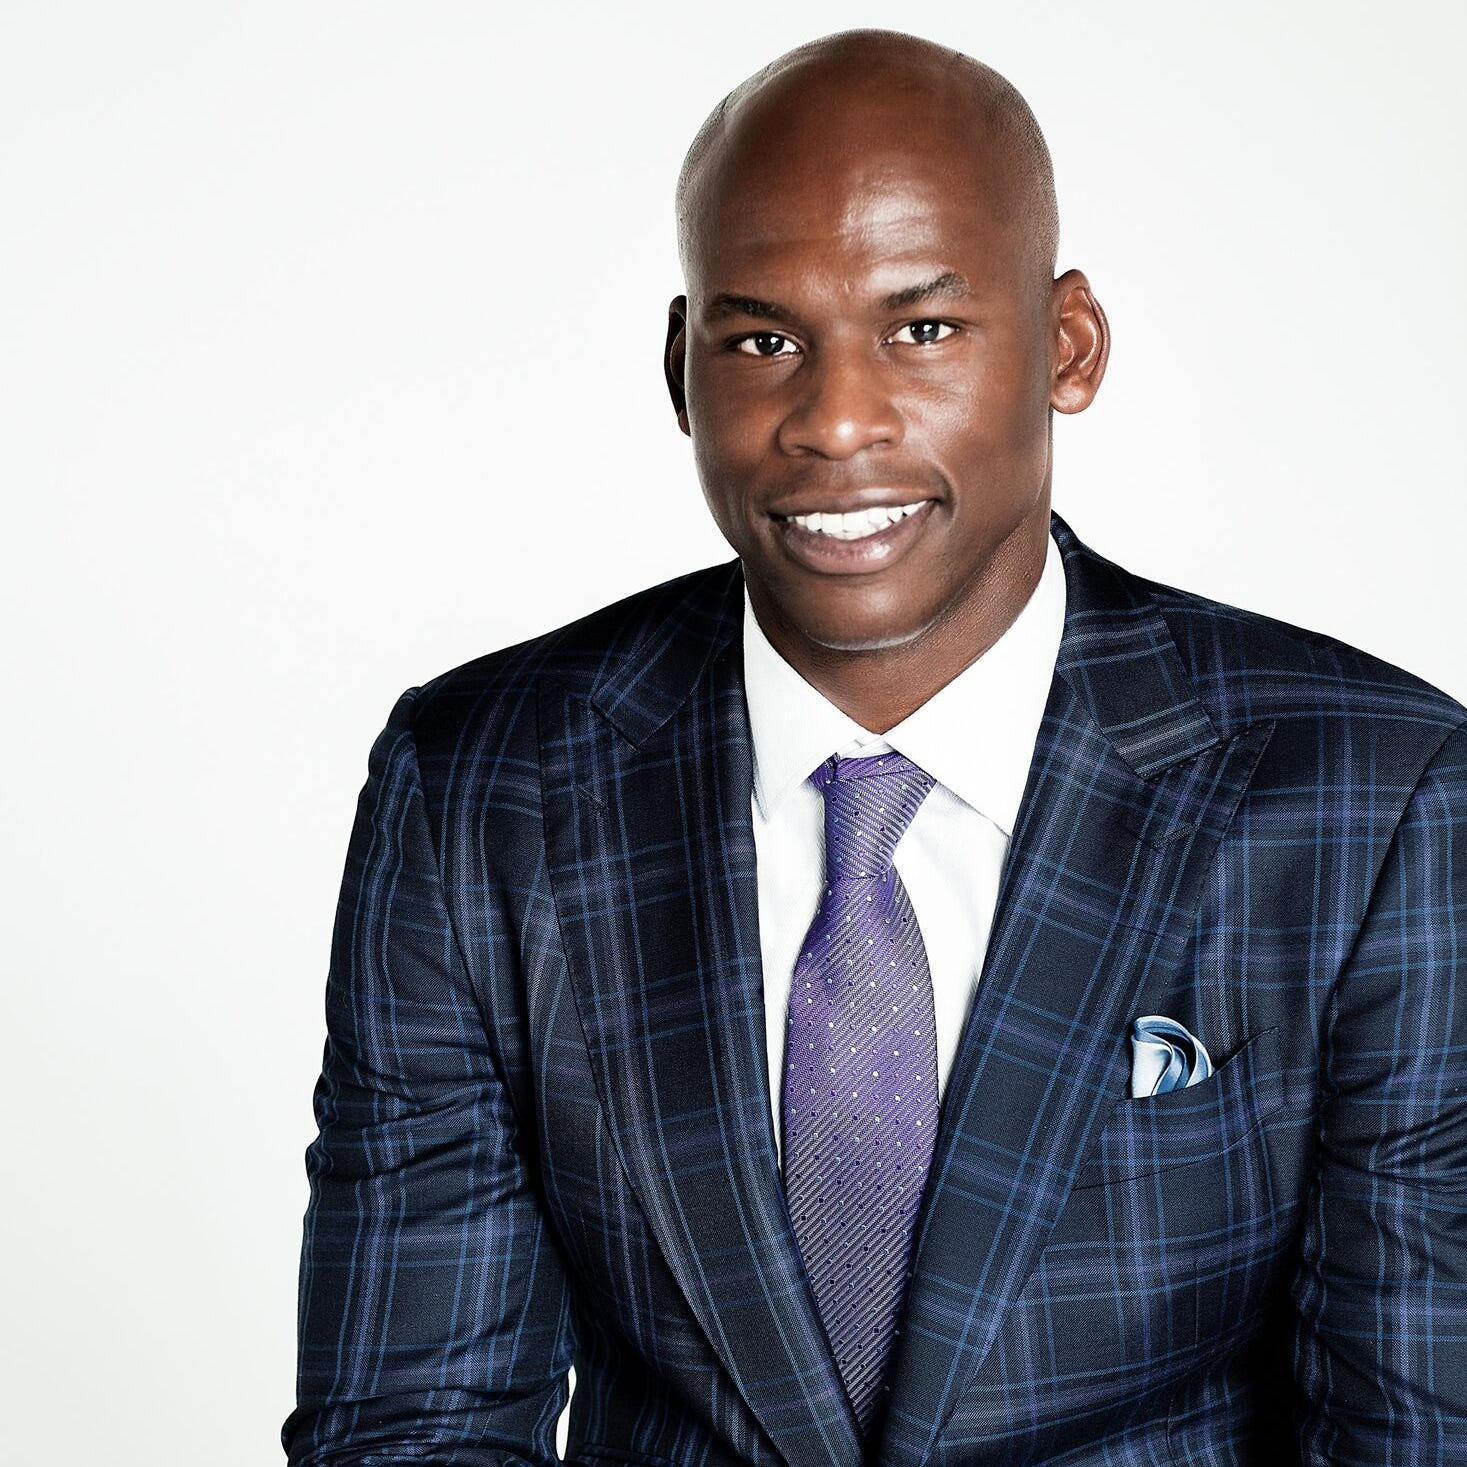 Doyel: Former Pacers forward Al Harrington's second career — marijuana tycoon